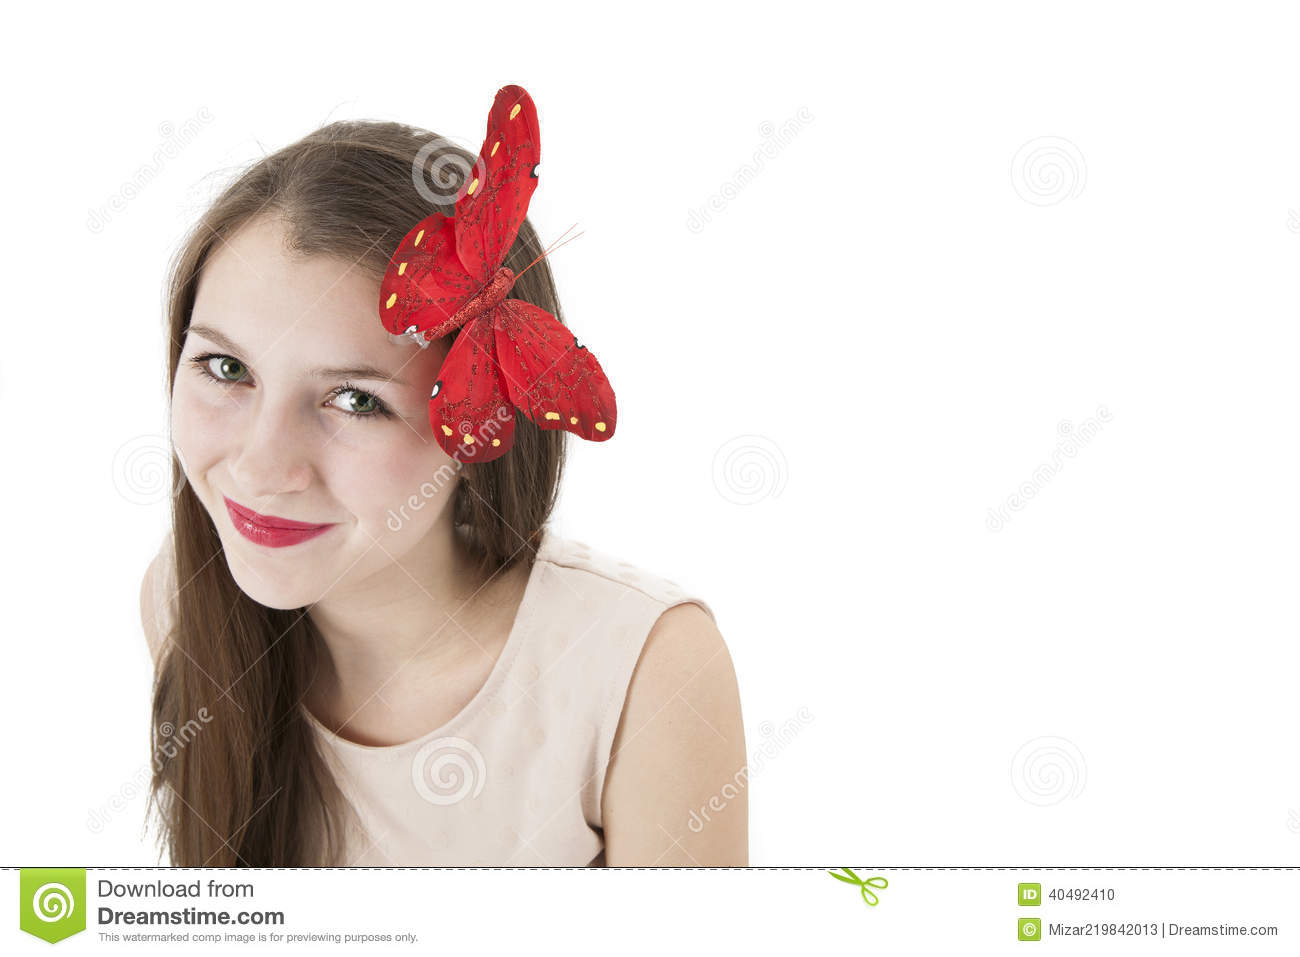 Portrait Of A Girl With A Butterfly On Her Head Stock Photo - Image ... 2ffd552ab